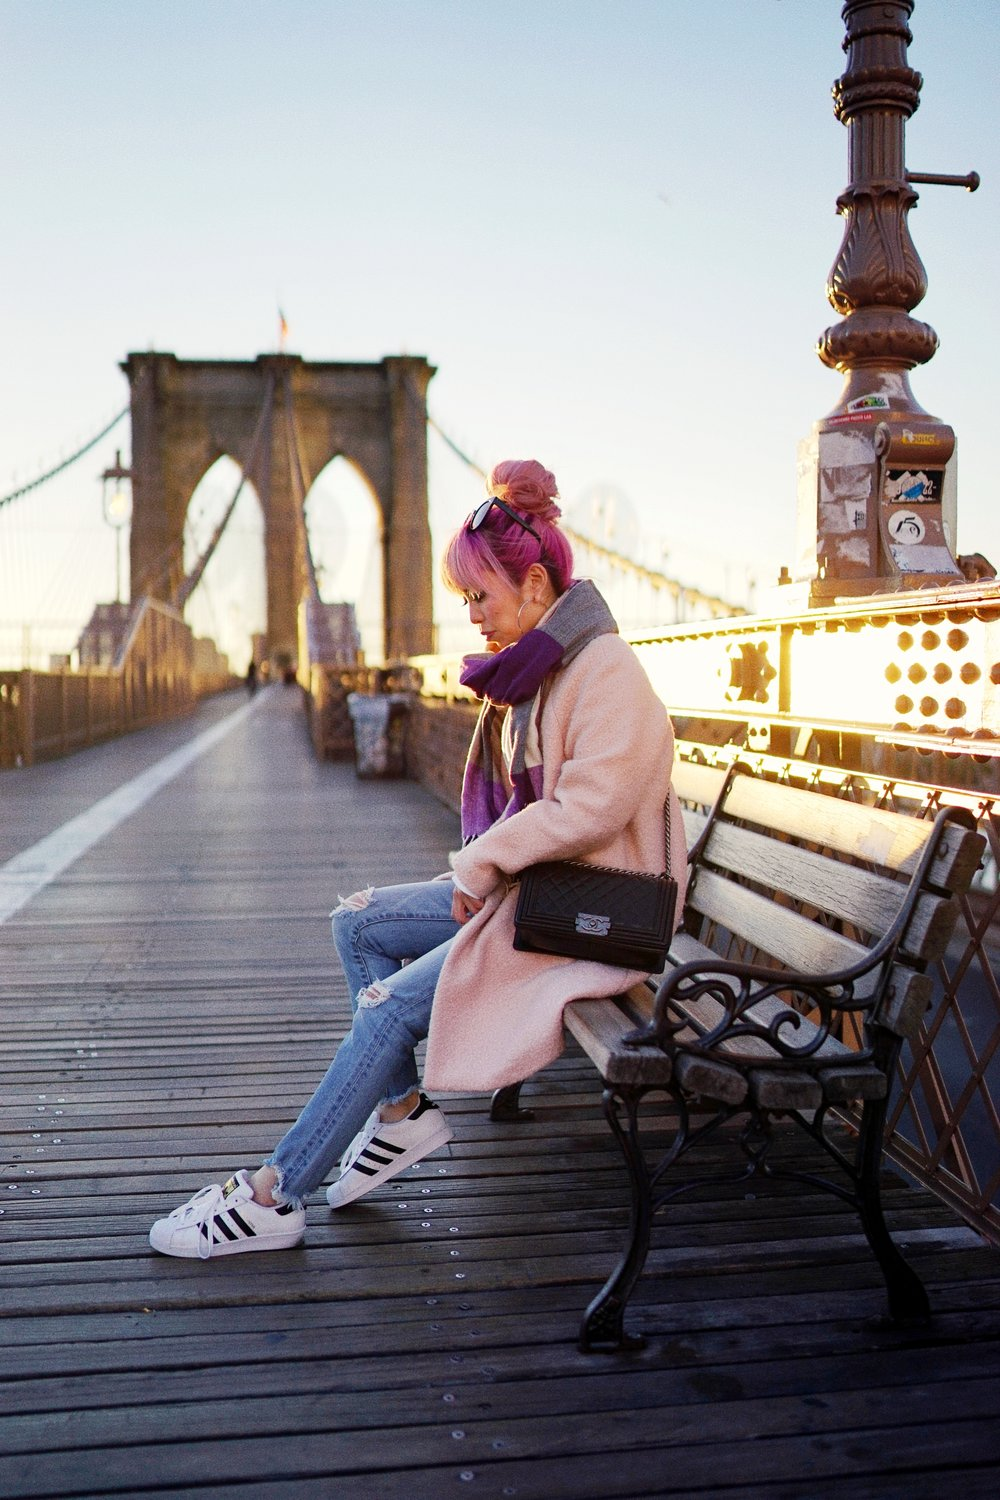 GAP Scarf-Zara pink coat-MOUSSY- frayed hem jeans- CHANEL Lambskin Quilted Medium Boy Flap Black-Adidas Superstar Shoes-Urban Outfitters Sunglasses-Aika's Love Closet-Sealtle fashion style blogger from japan-pink hair-brooklyn bridge-new york-city 8